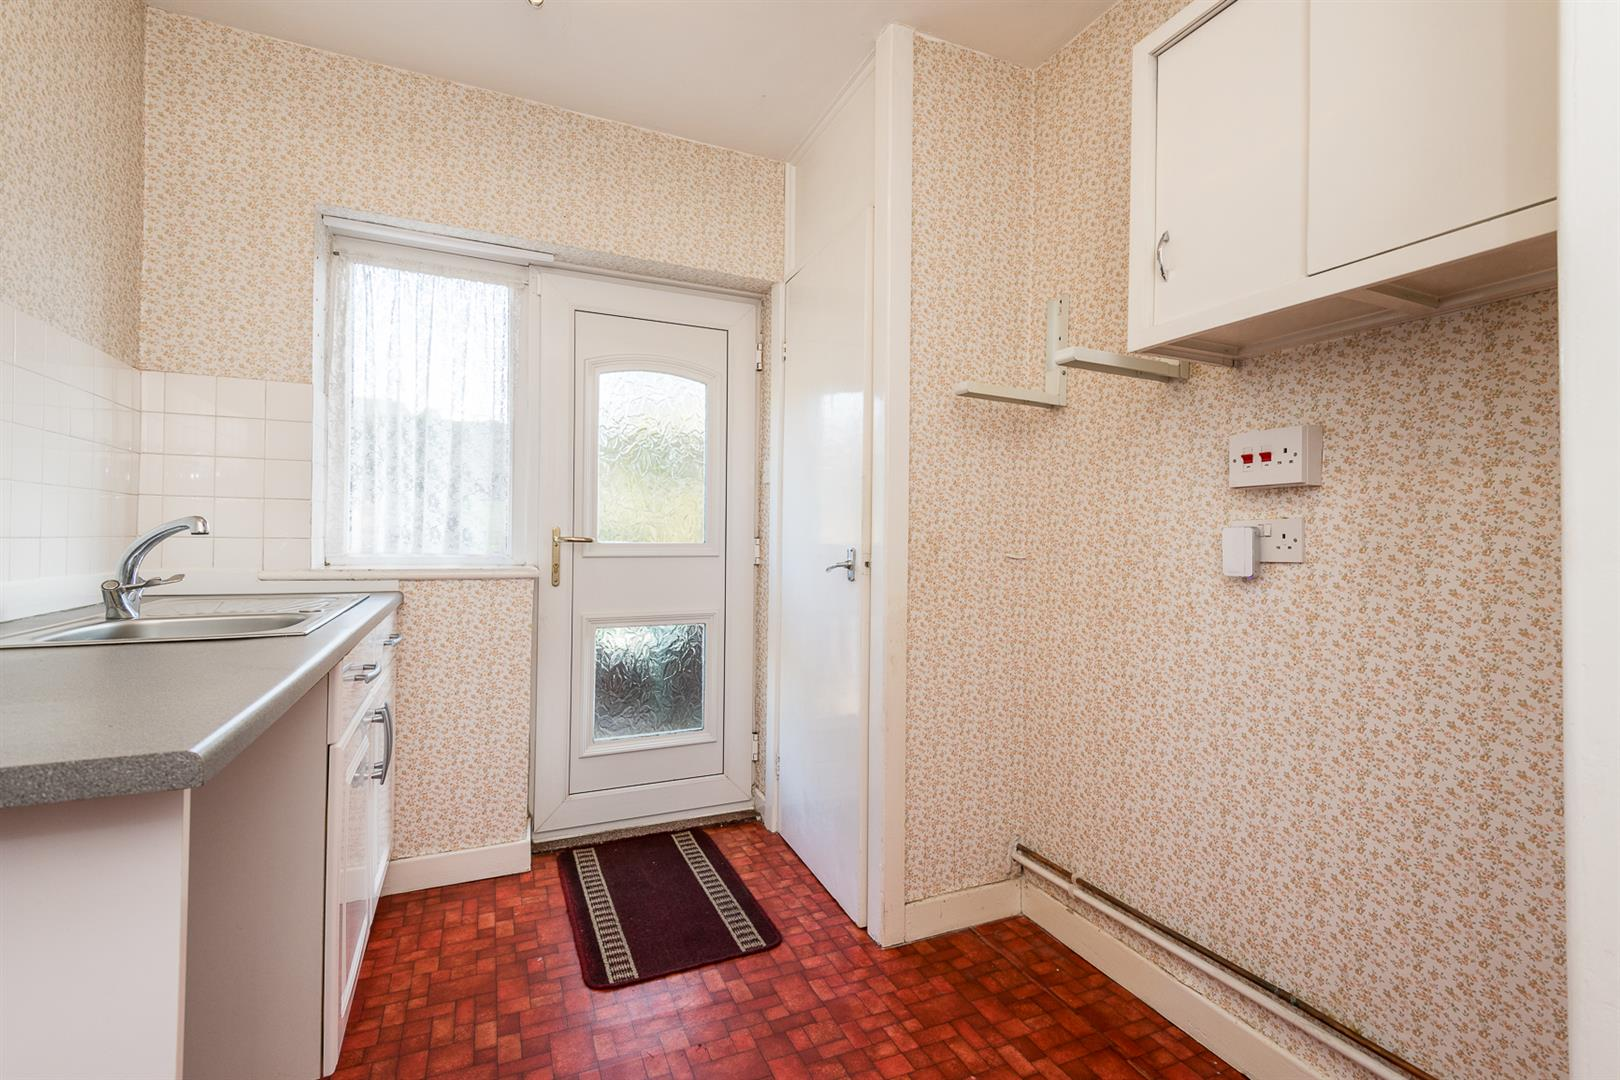 2 Bedroom Semi Detached Bungalow Sale Agreed Image 4